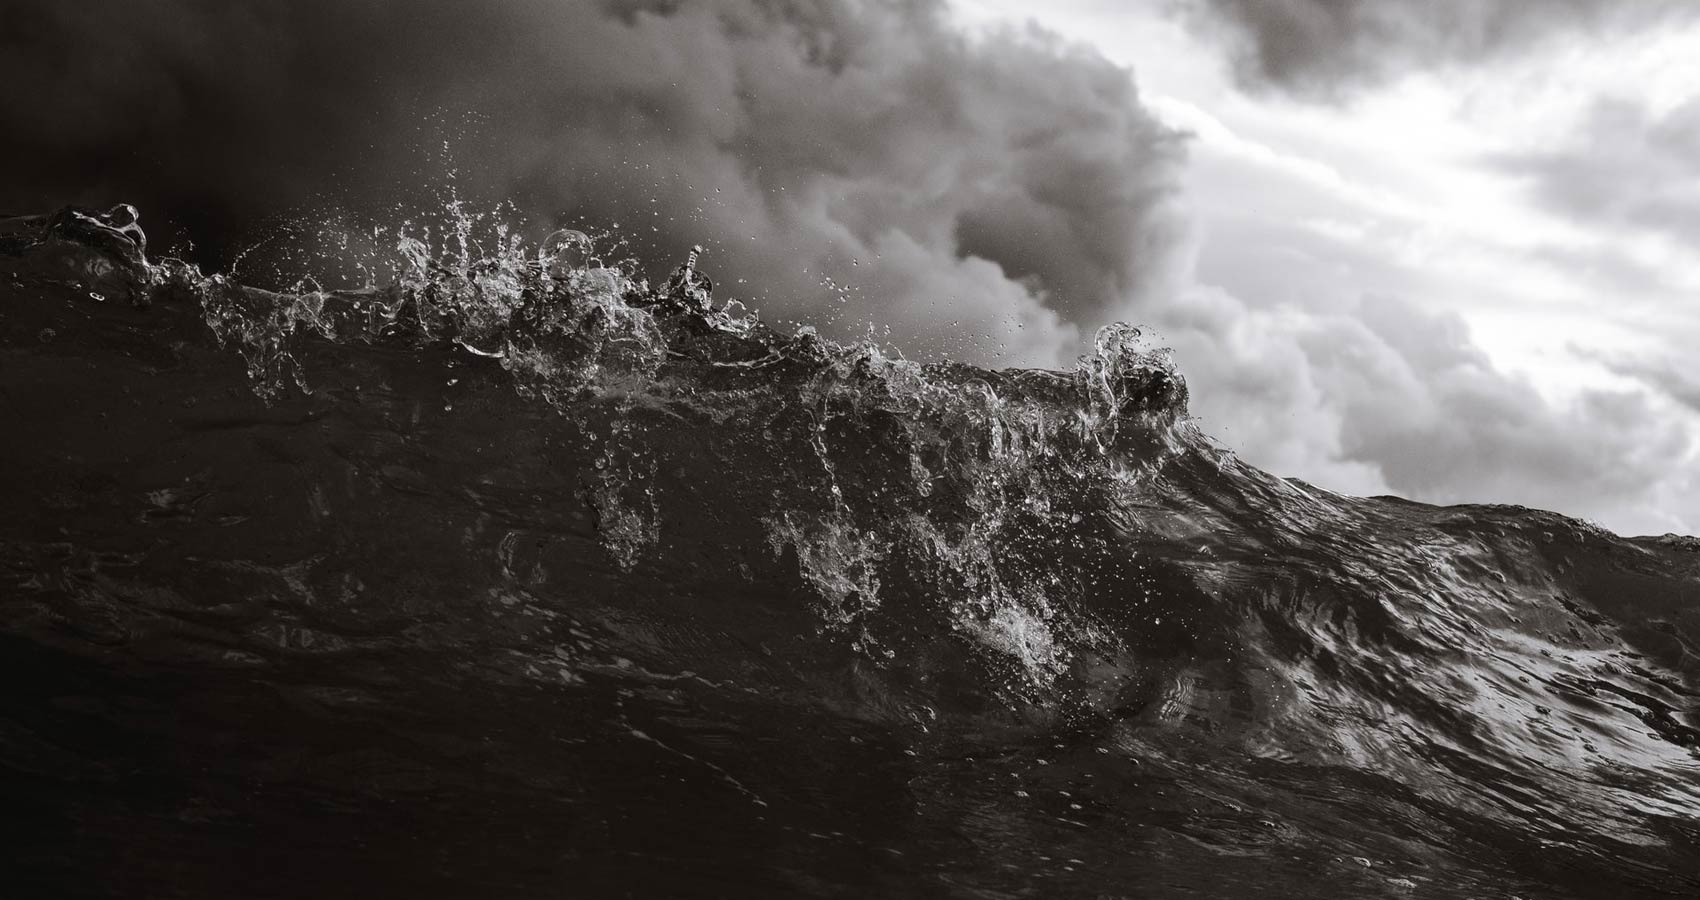 I Am The Raging Ocean, poetry by Caleb Burphy at Spillwords.com